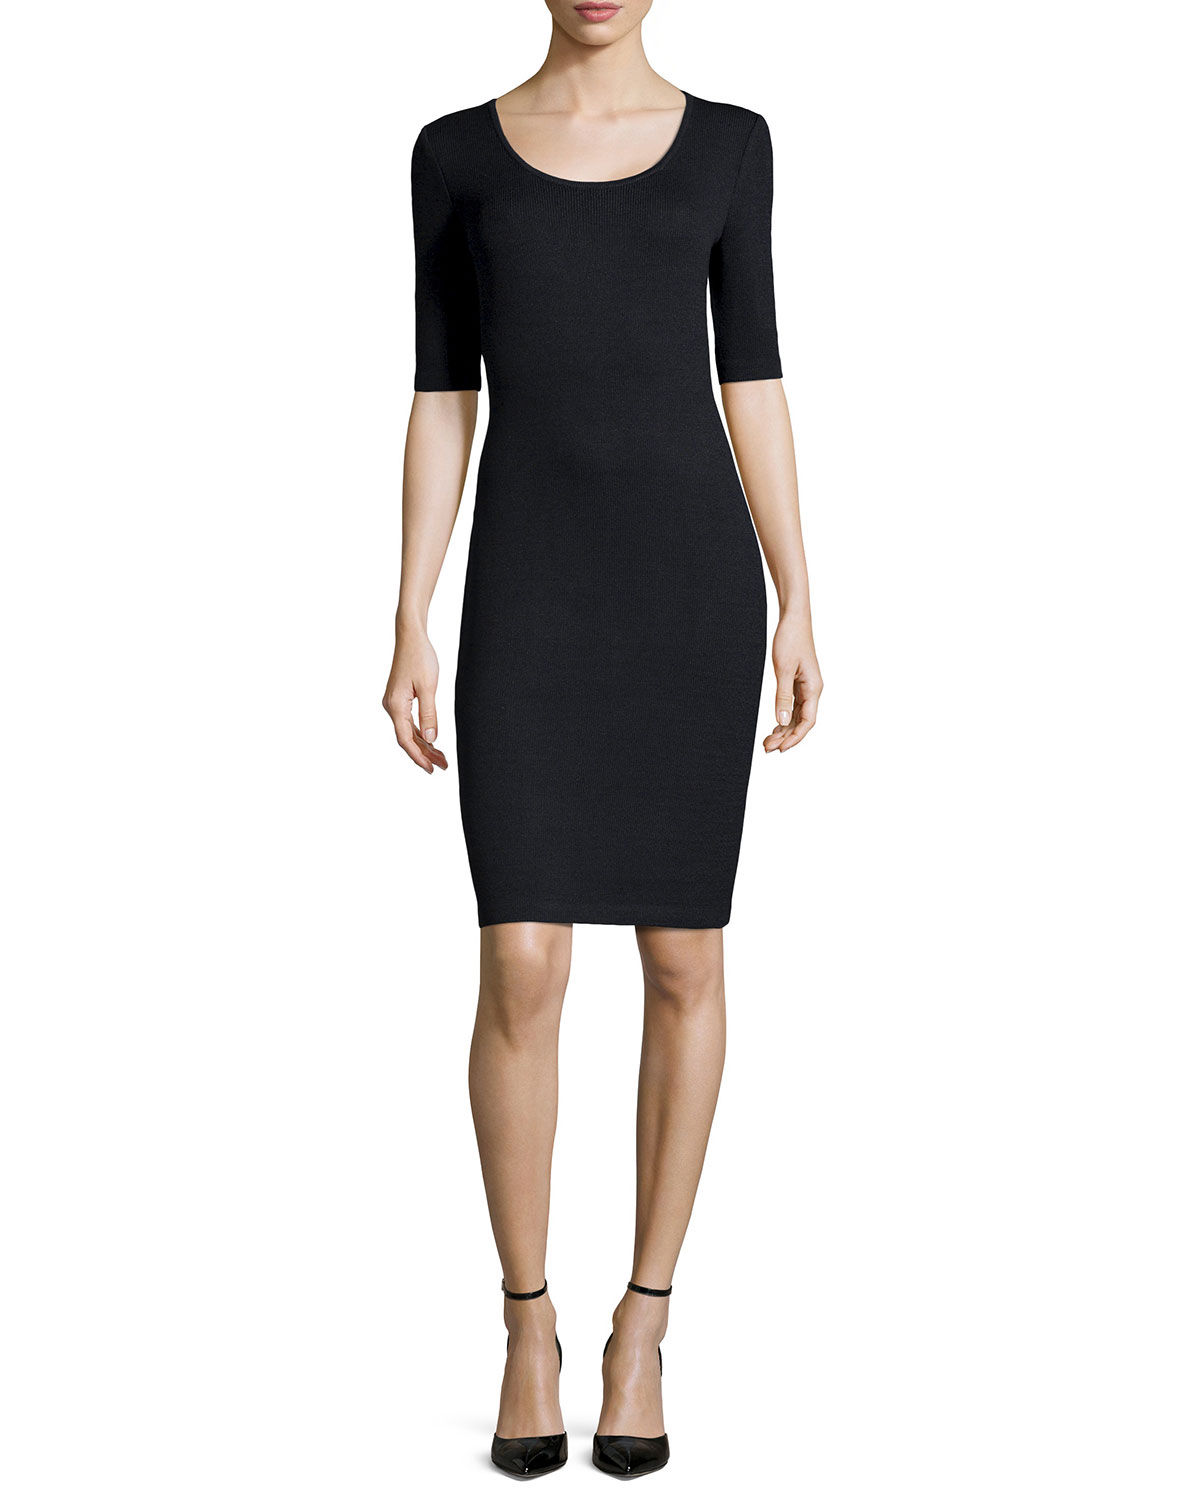 St. John - Women's Santana Knit Half-Sleeve Sheath Dress, Oynx - St. John - Onyx (14)